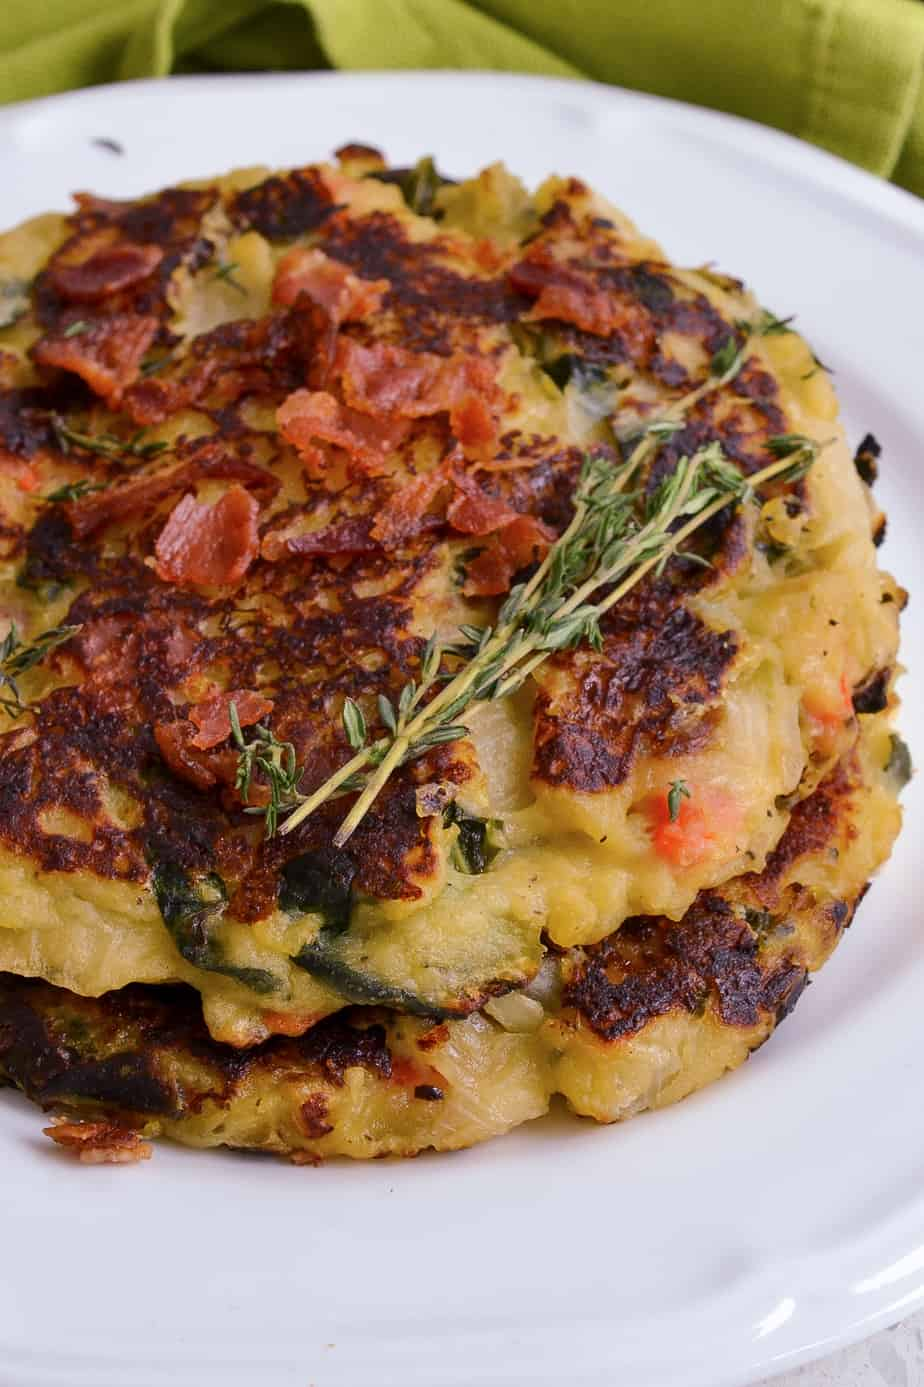 Delicious potato cakes made with cabbage, onions, carrots, collard greens and ham.